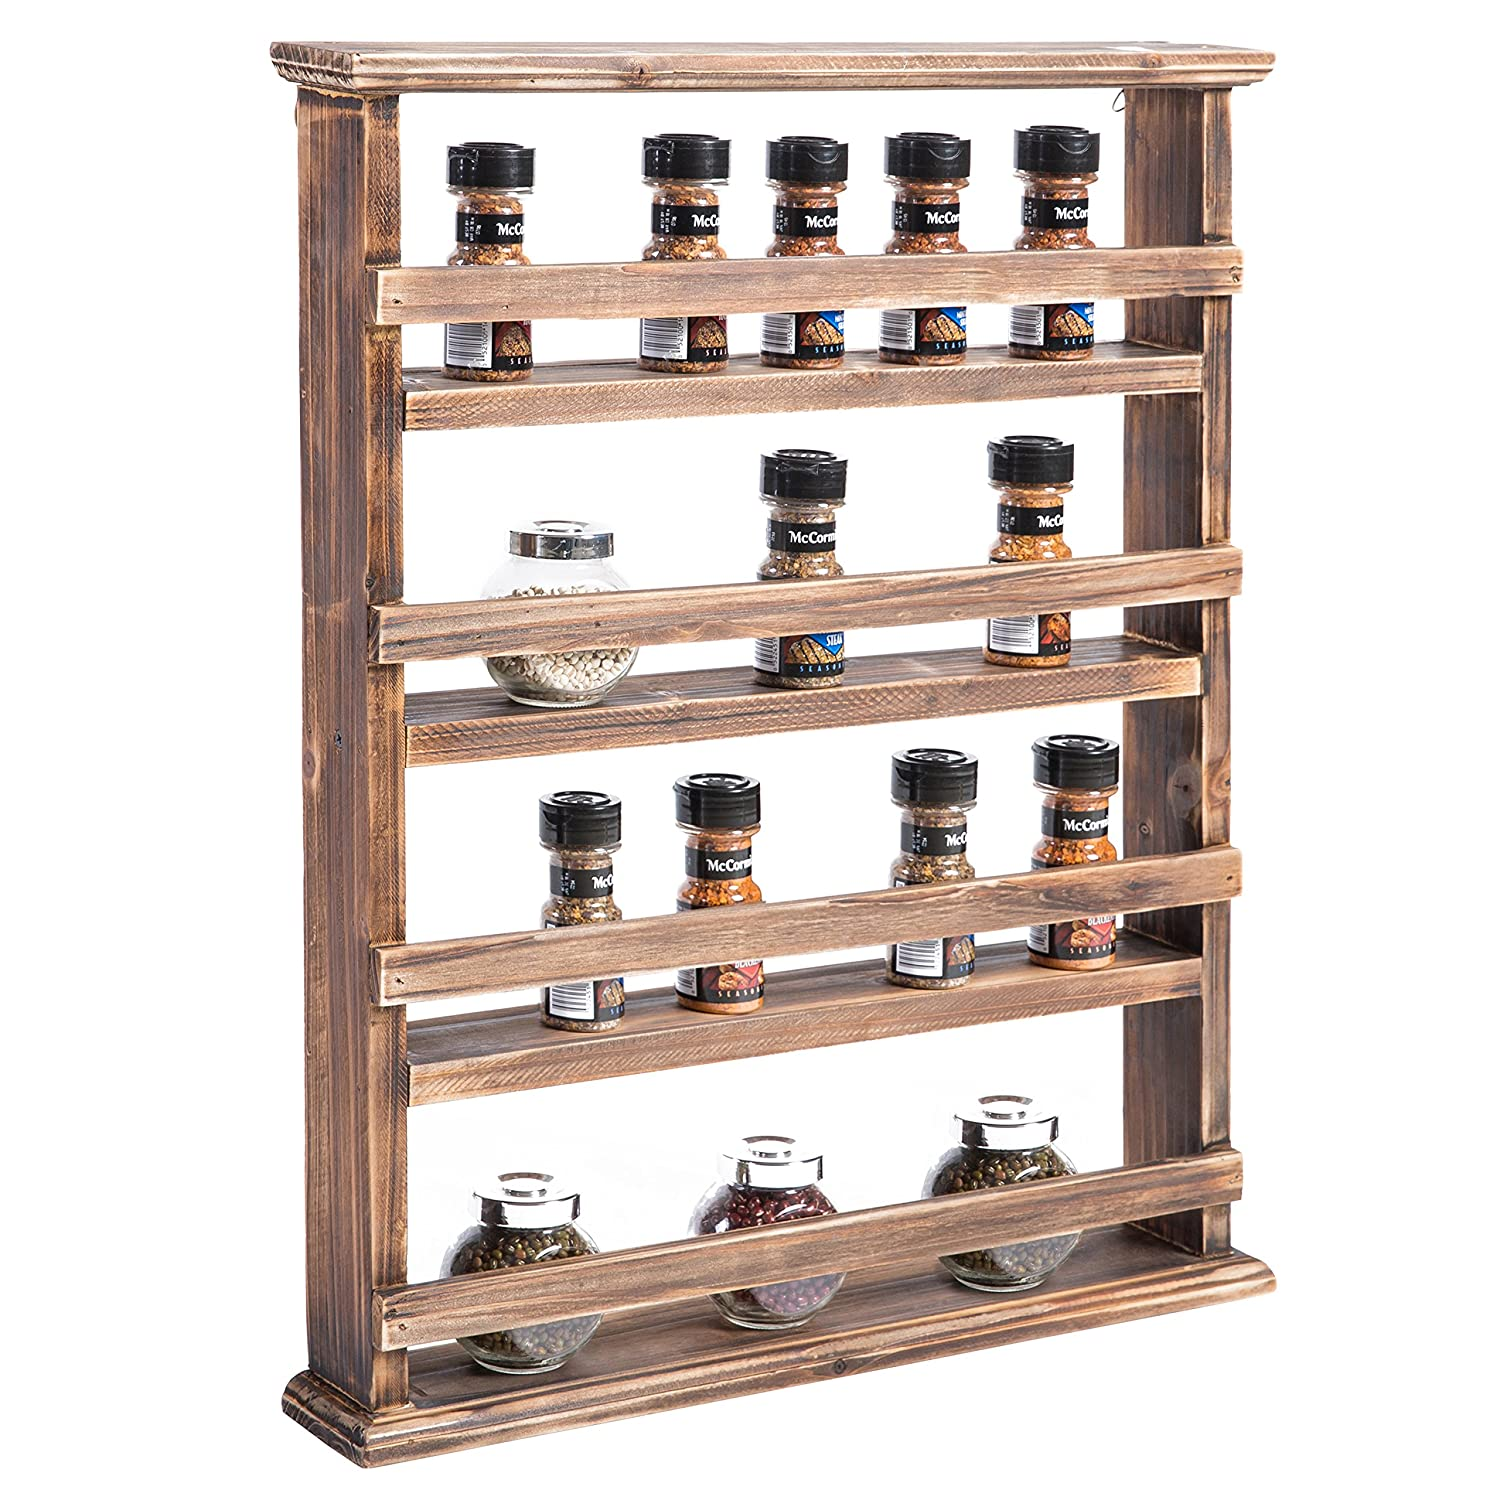 Amazoncom Mygift 4 Tier Country Rustic Wall Mounted Wood Spice